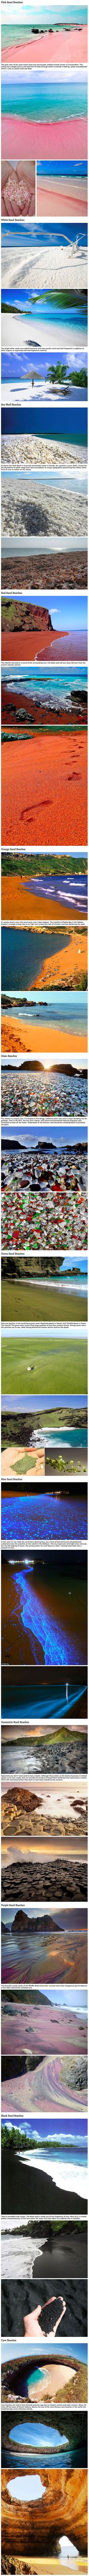 12 absolutely unique kinds of beaches you probably didn't know existed.